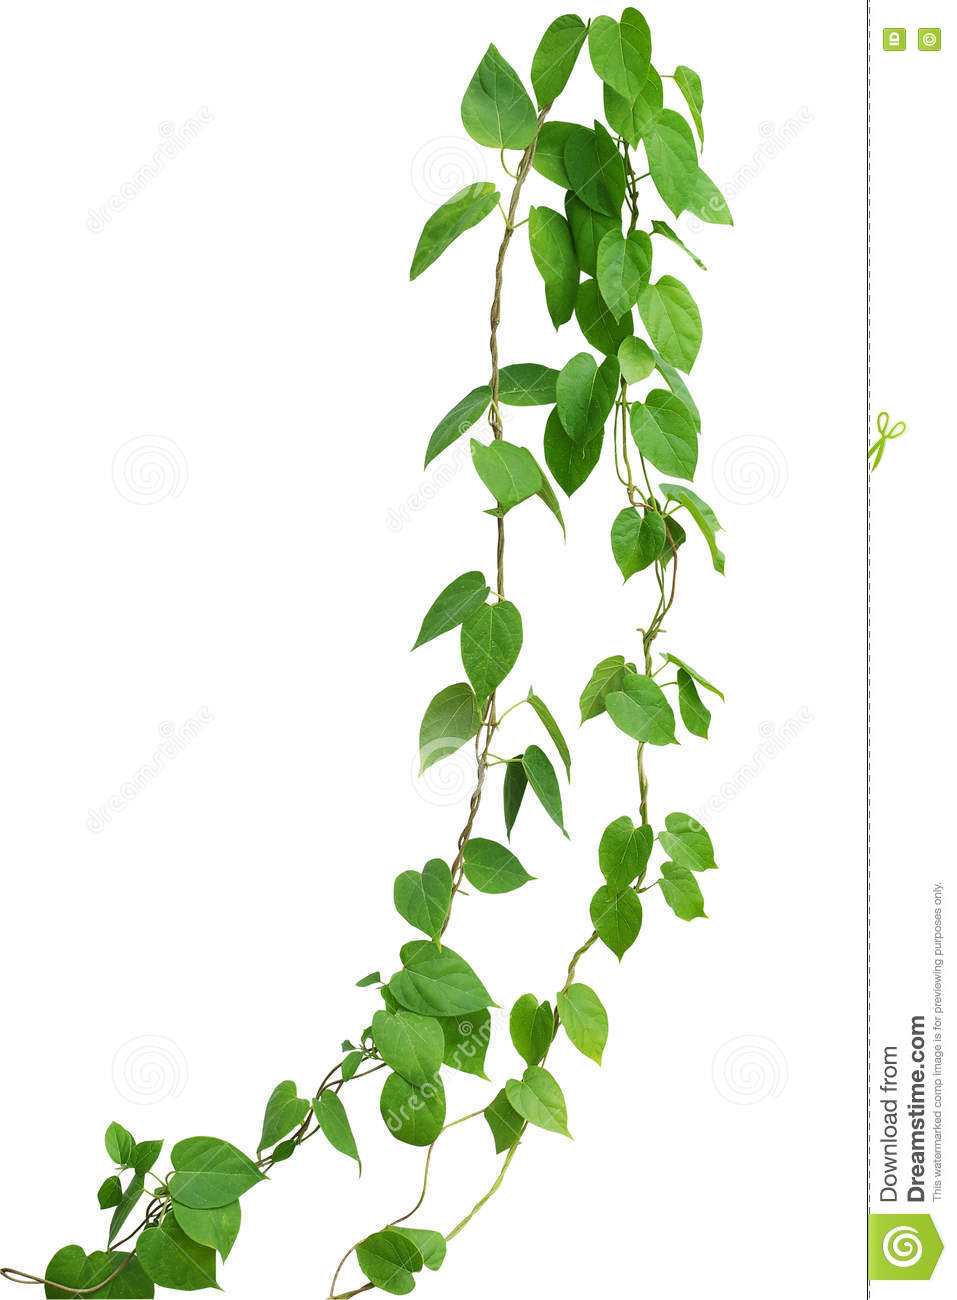 Heart Shaped Green Leaf Vines Isolated On White Background Clip